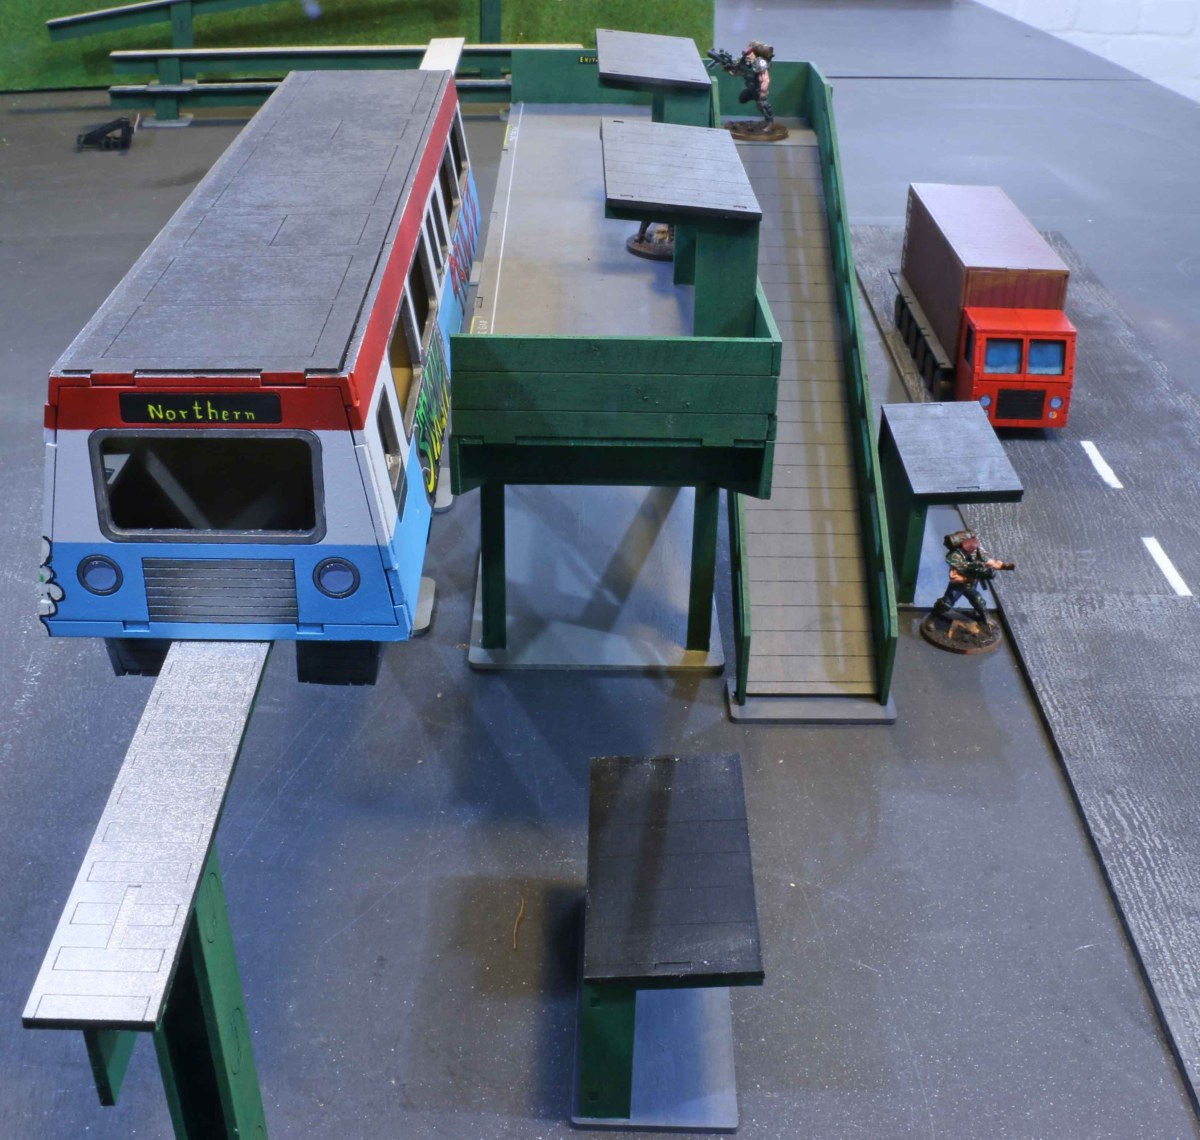 Trucks, forklifts, cargo and a Monorail